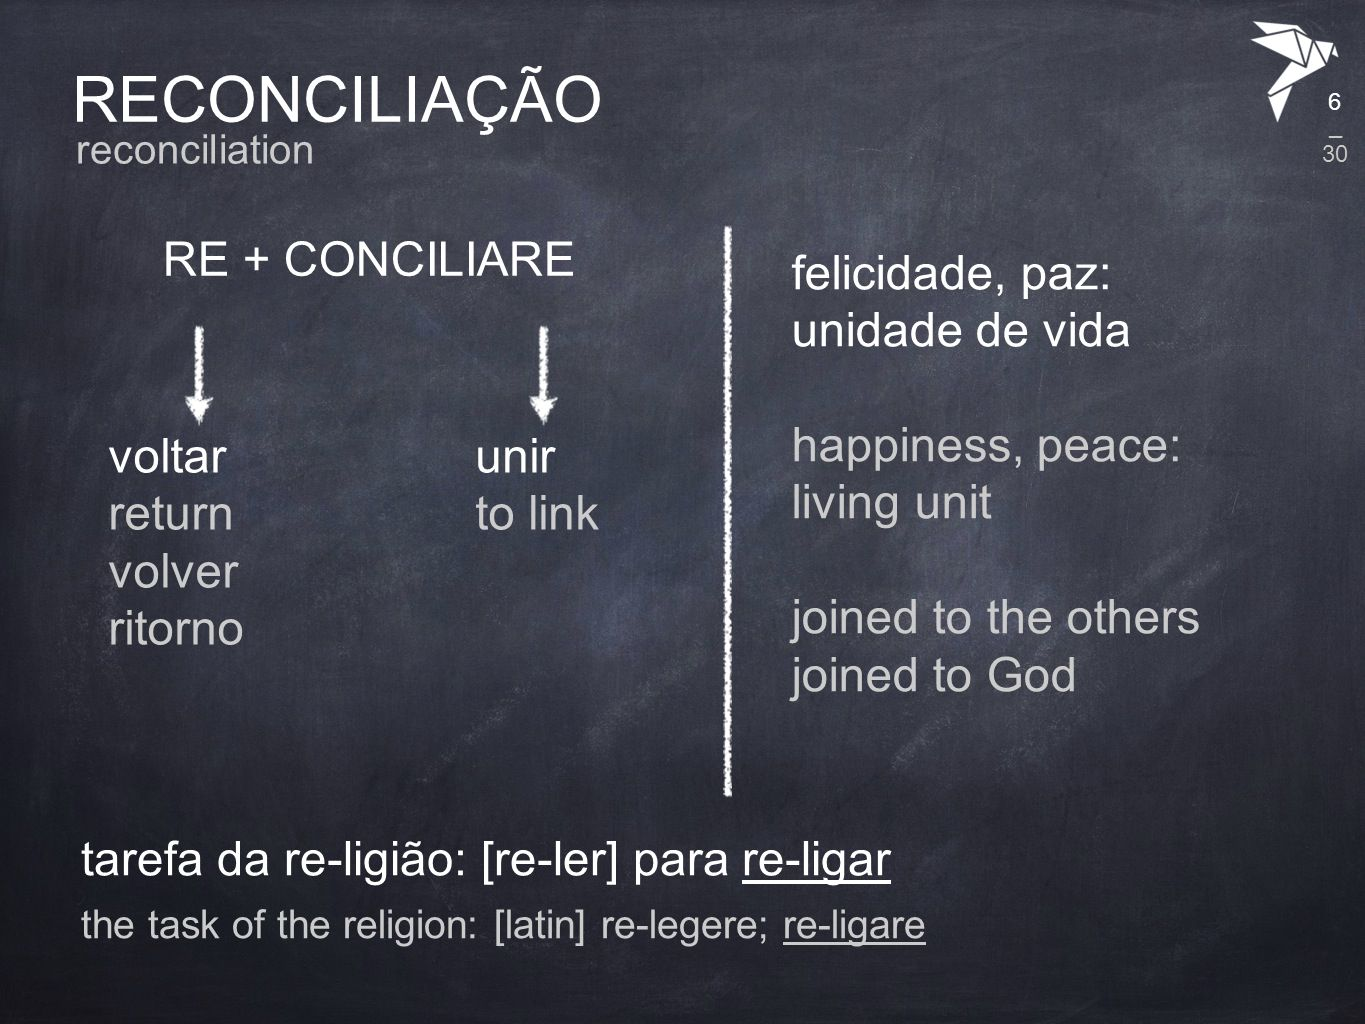 RECONCILIAÇÃO RE + CONCILIARE reconciliation voltar return volver ritorno unir to link felicidade, paz: unidade de vida happiness, peace: living unit